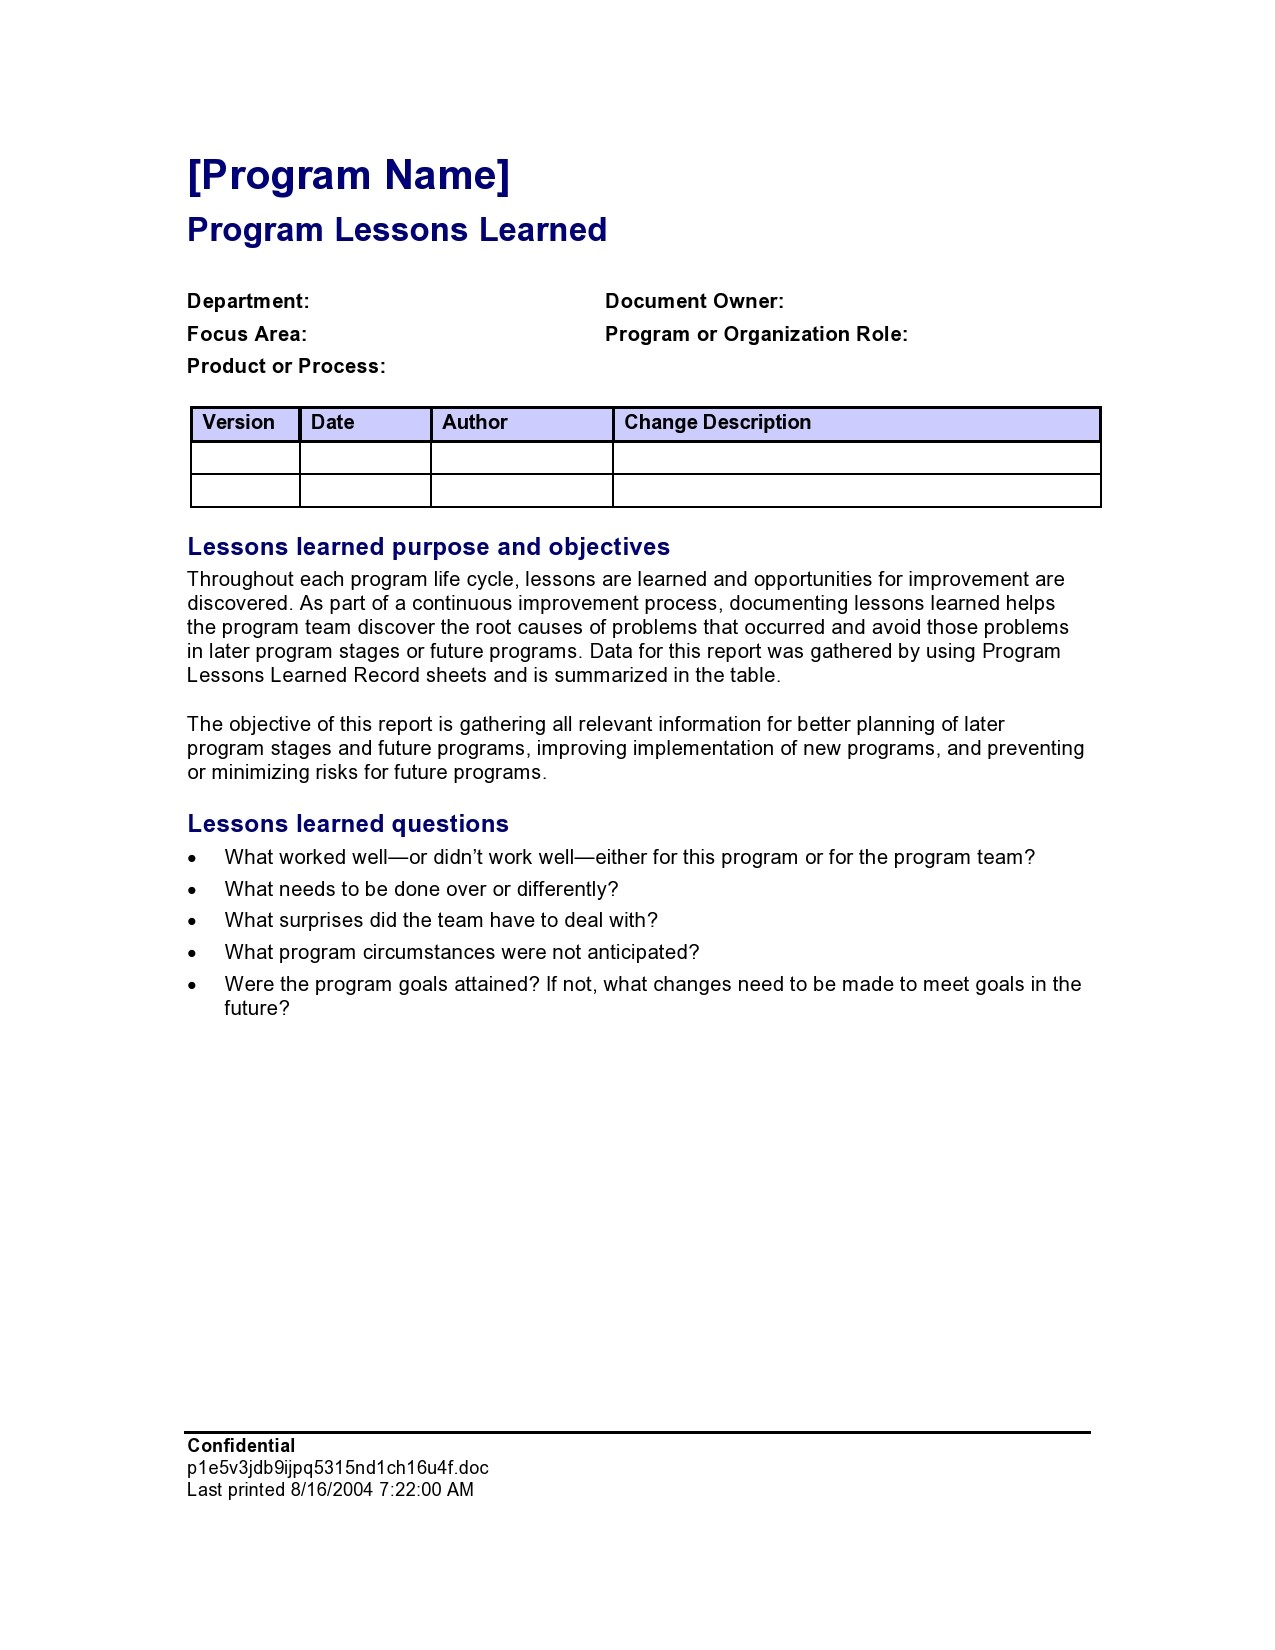 Free lessons learned template 10